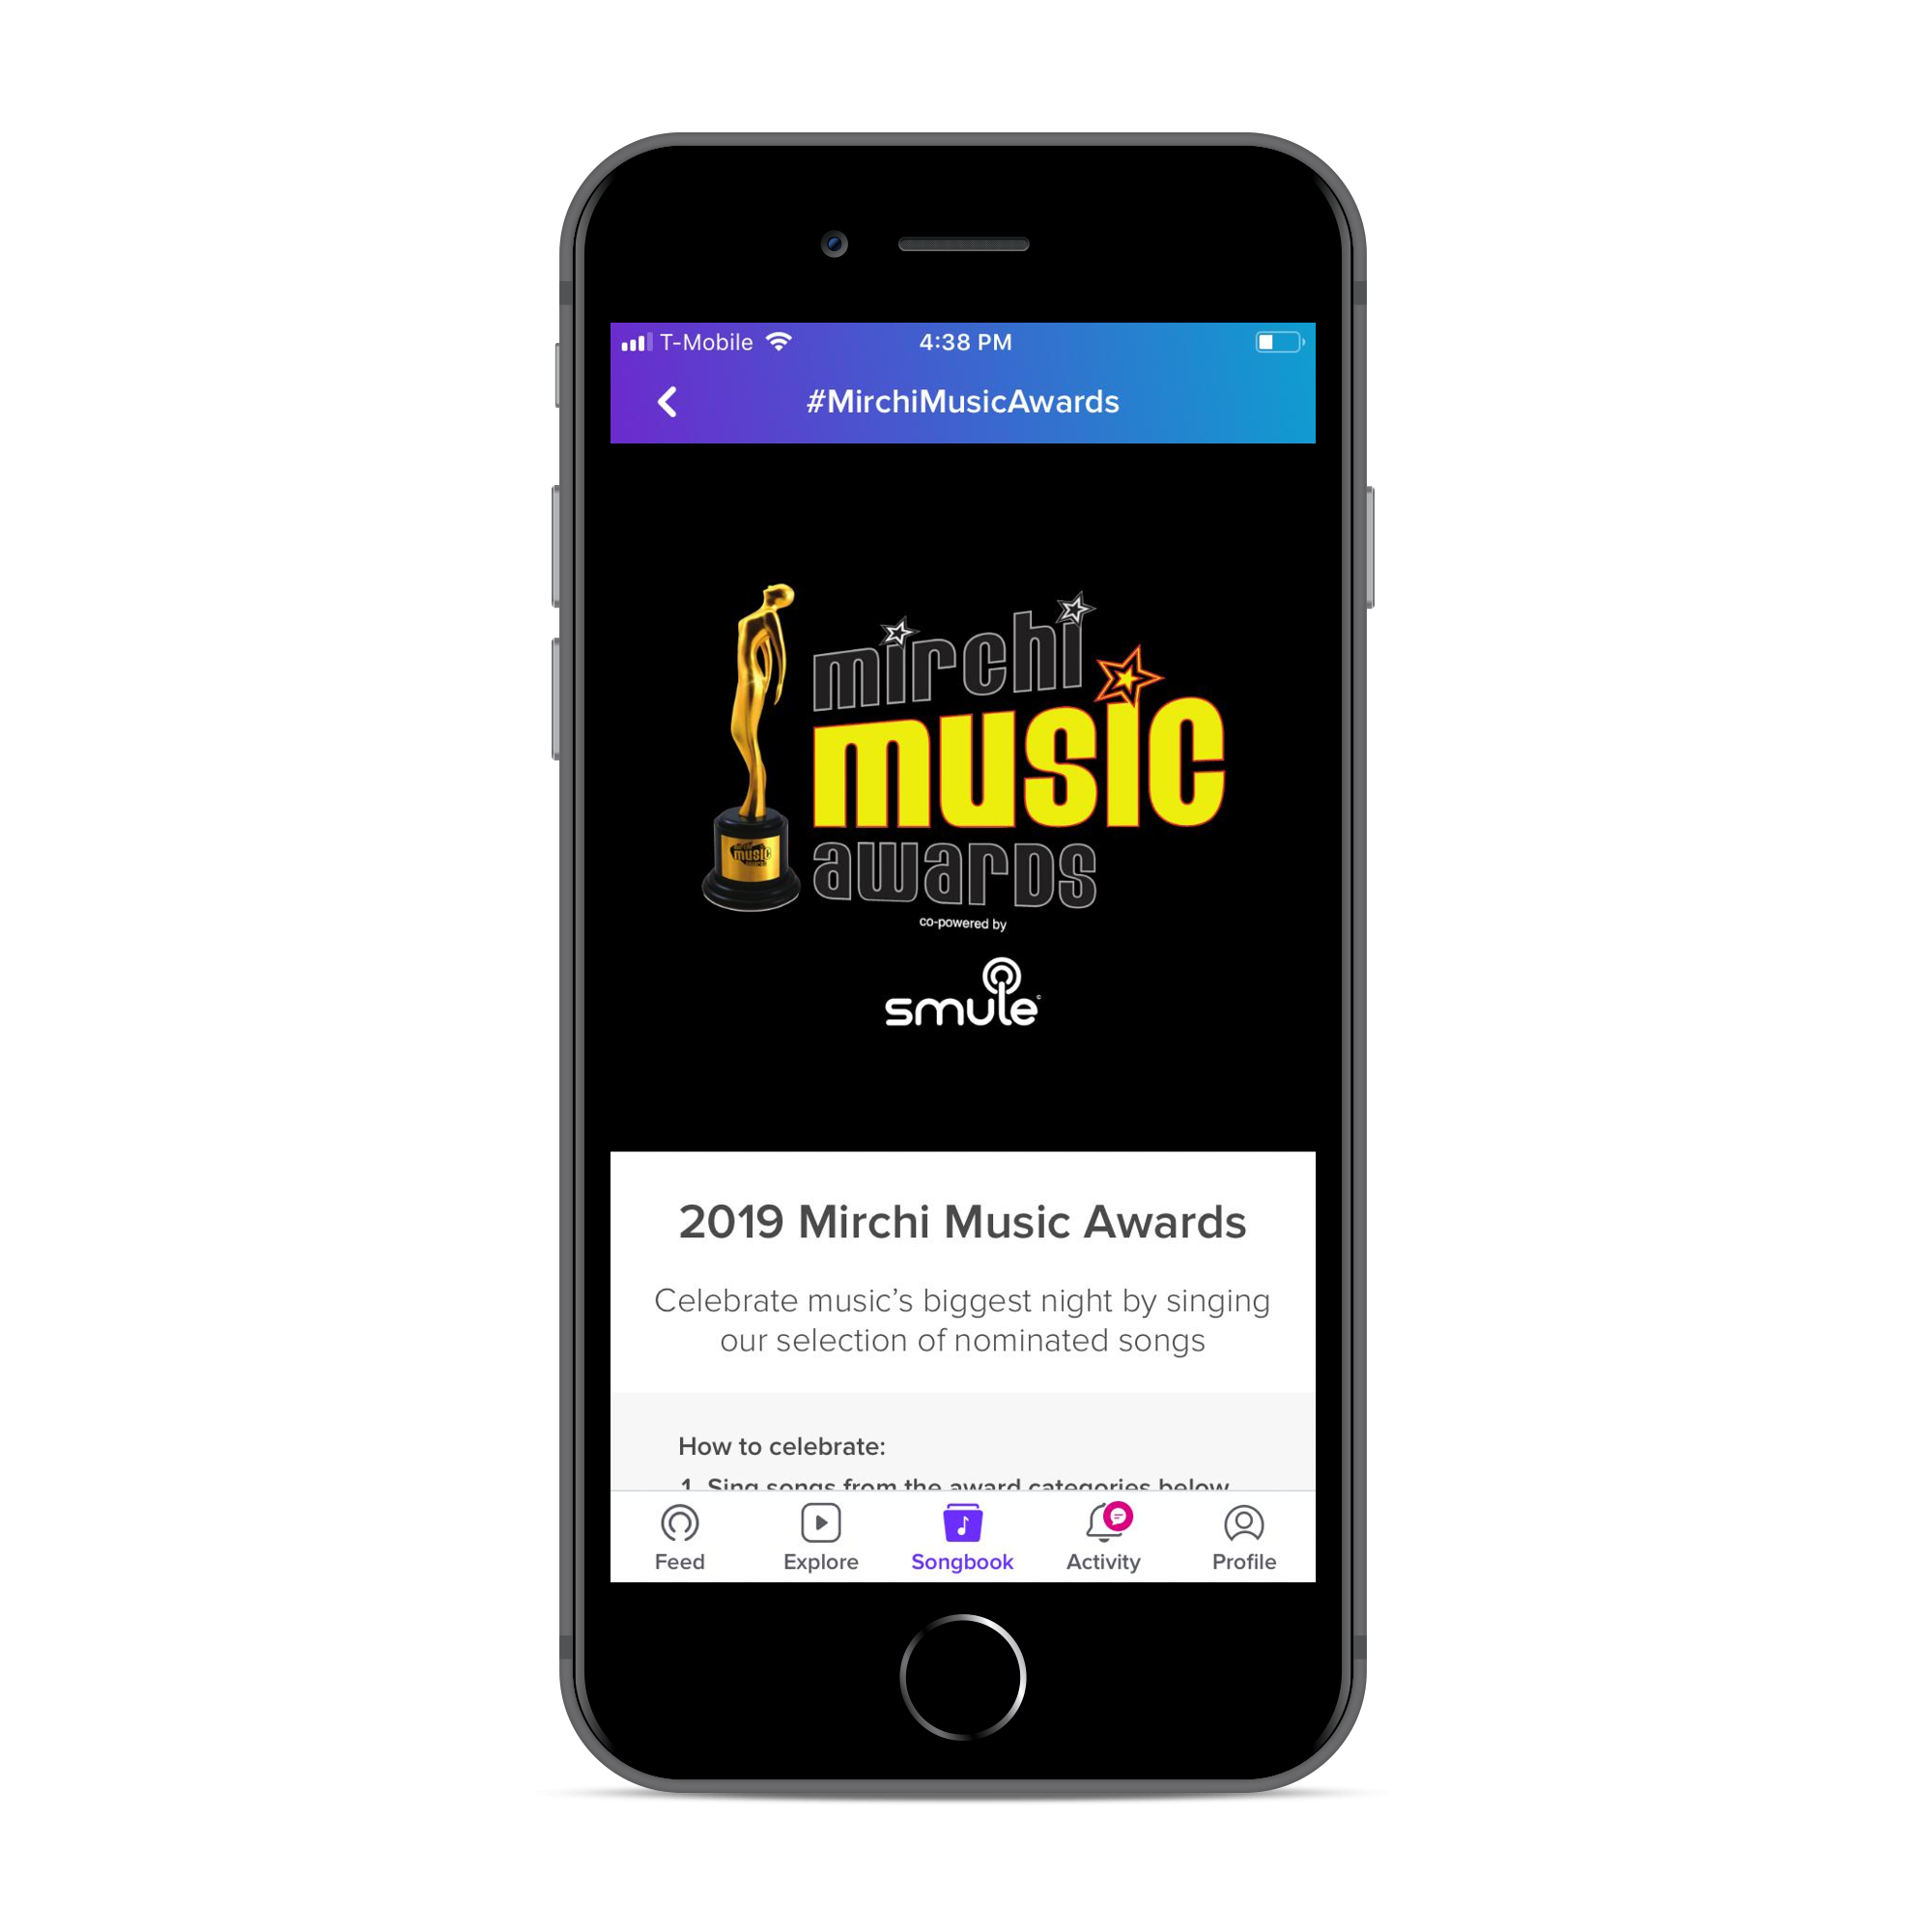 Smule app + Mirchi Music Awards